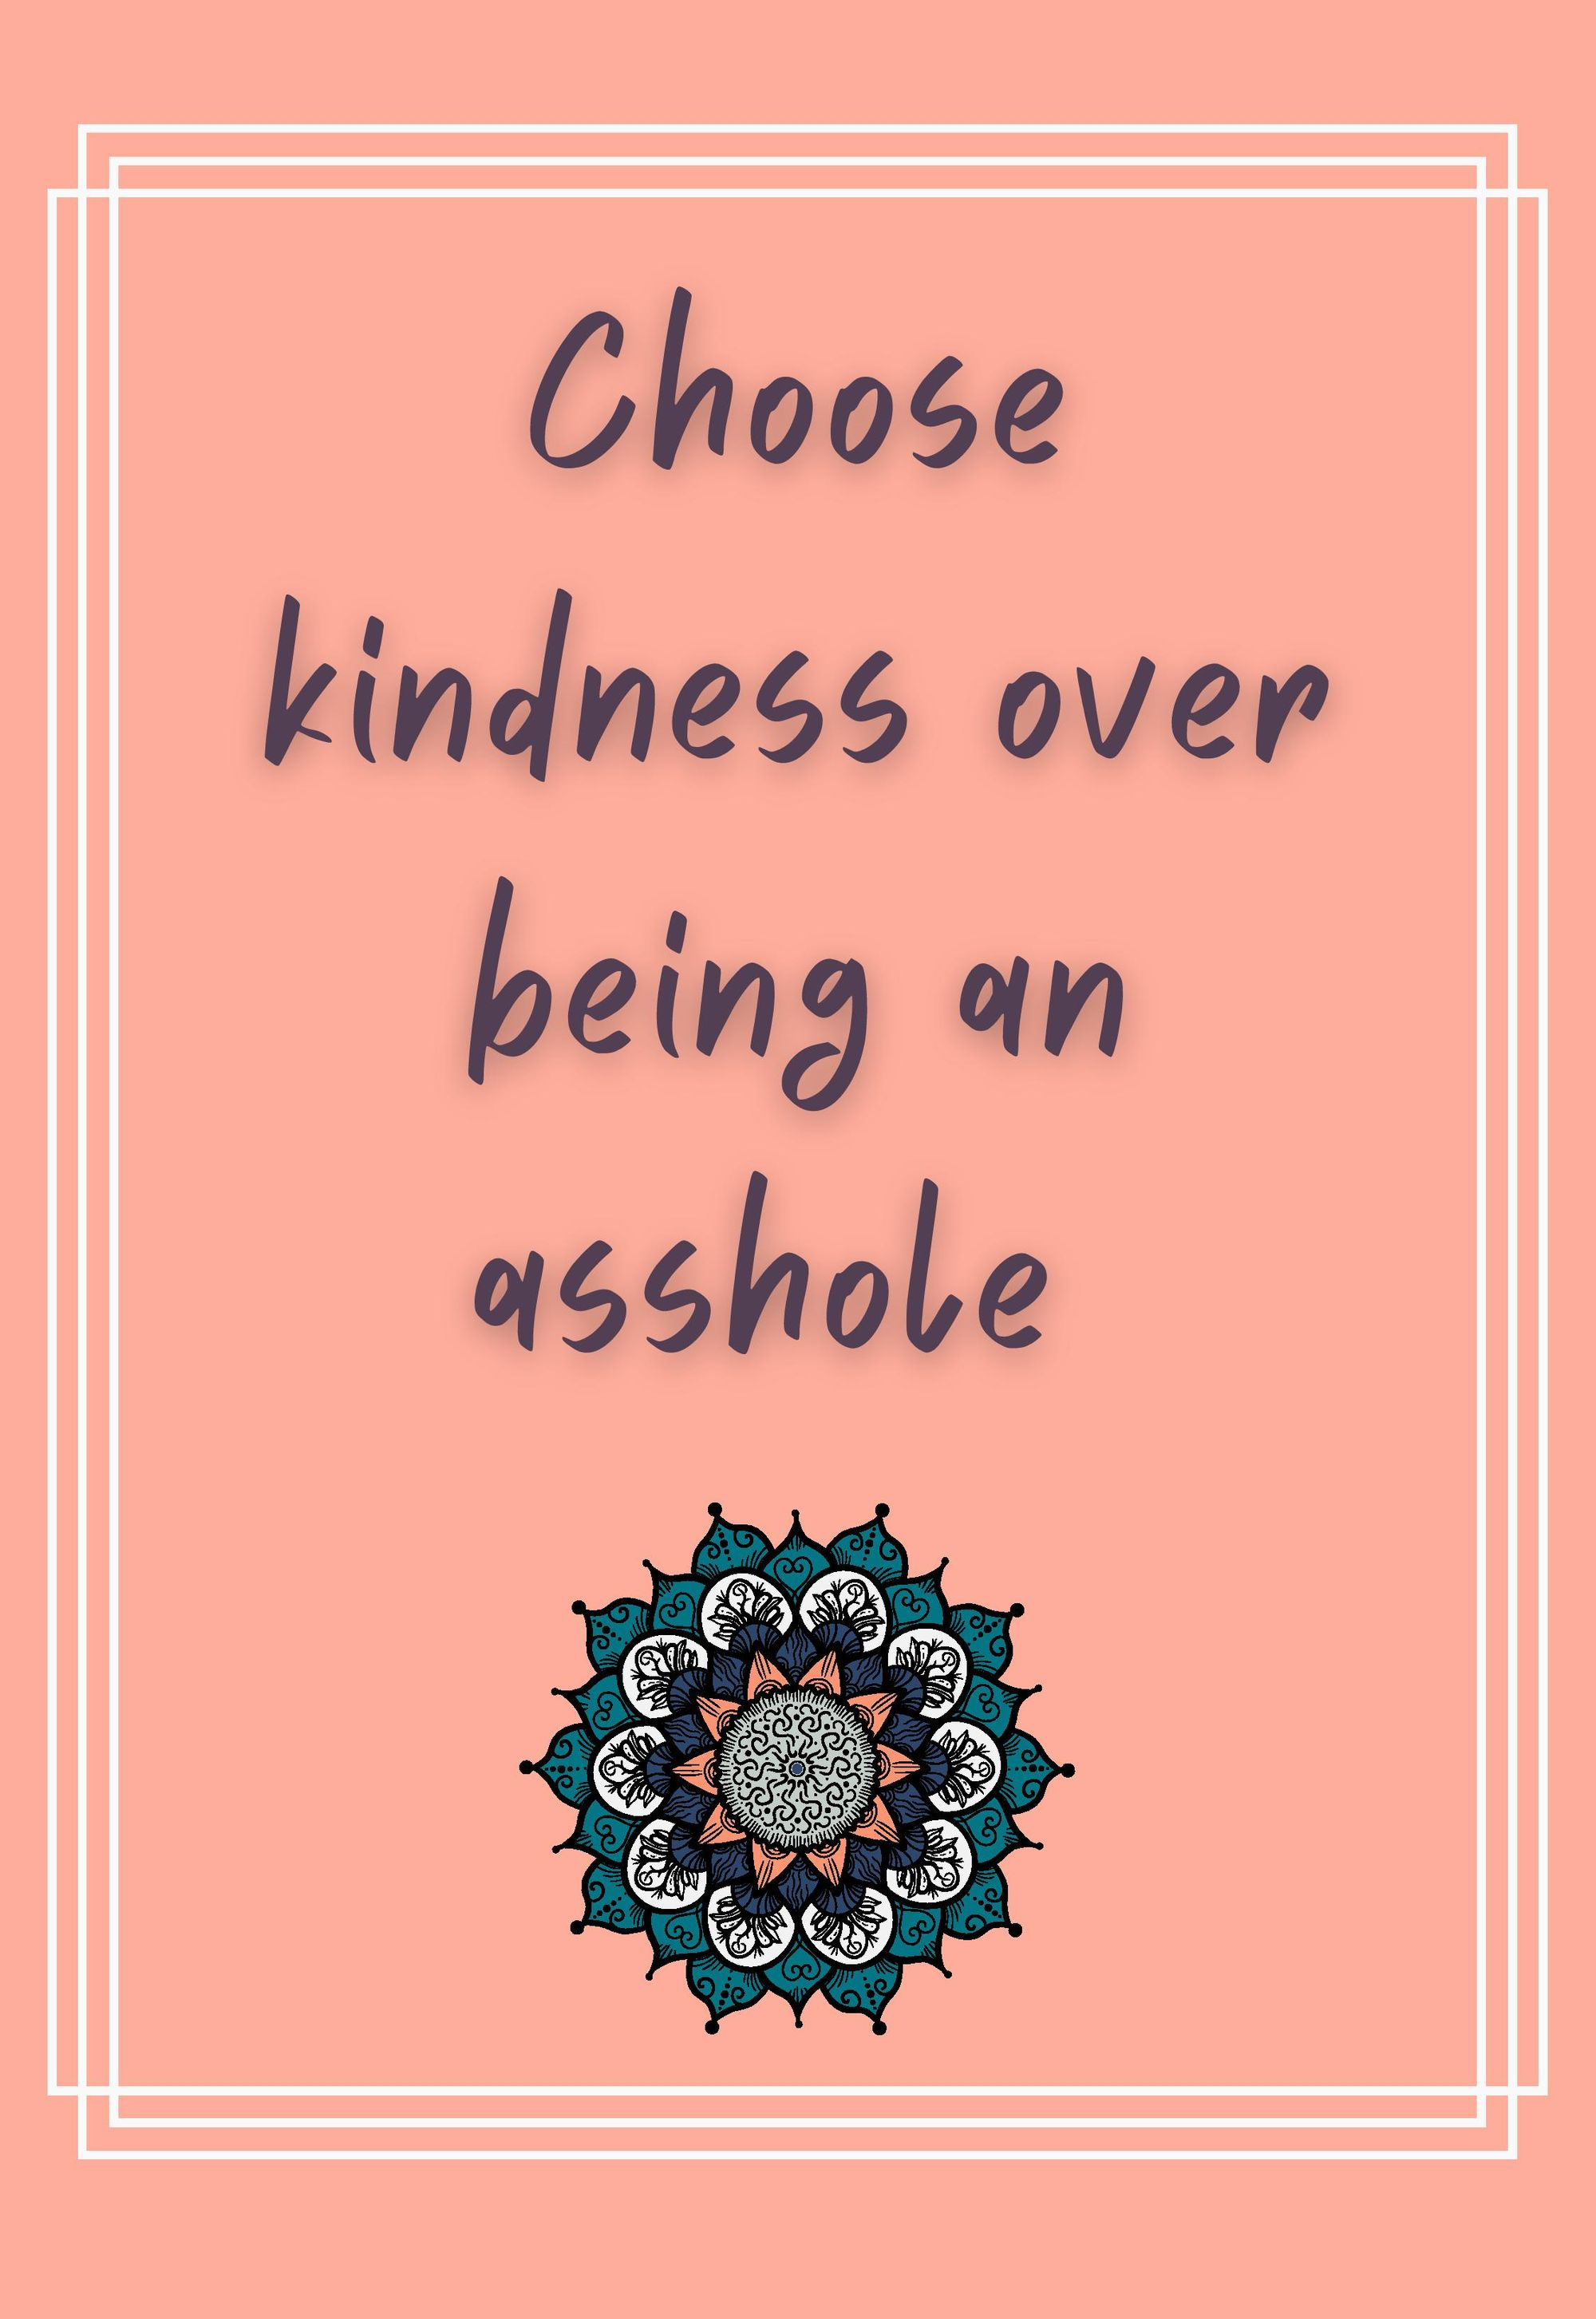 don't be an asshole.  Be kind.